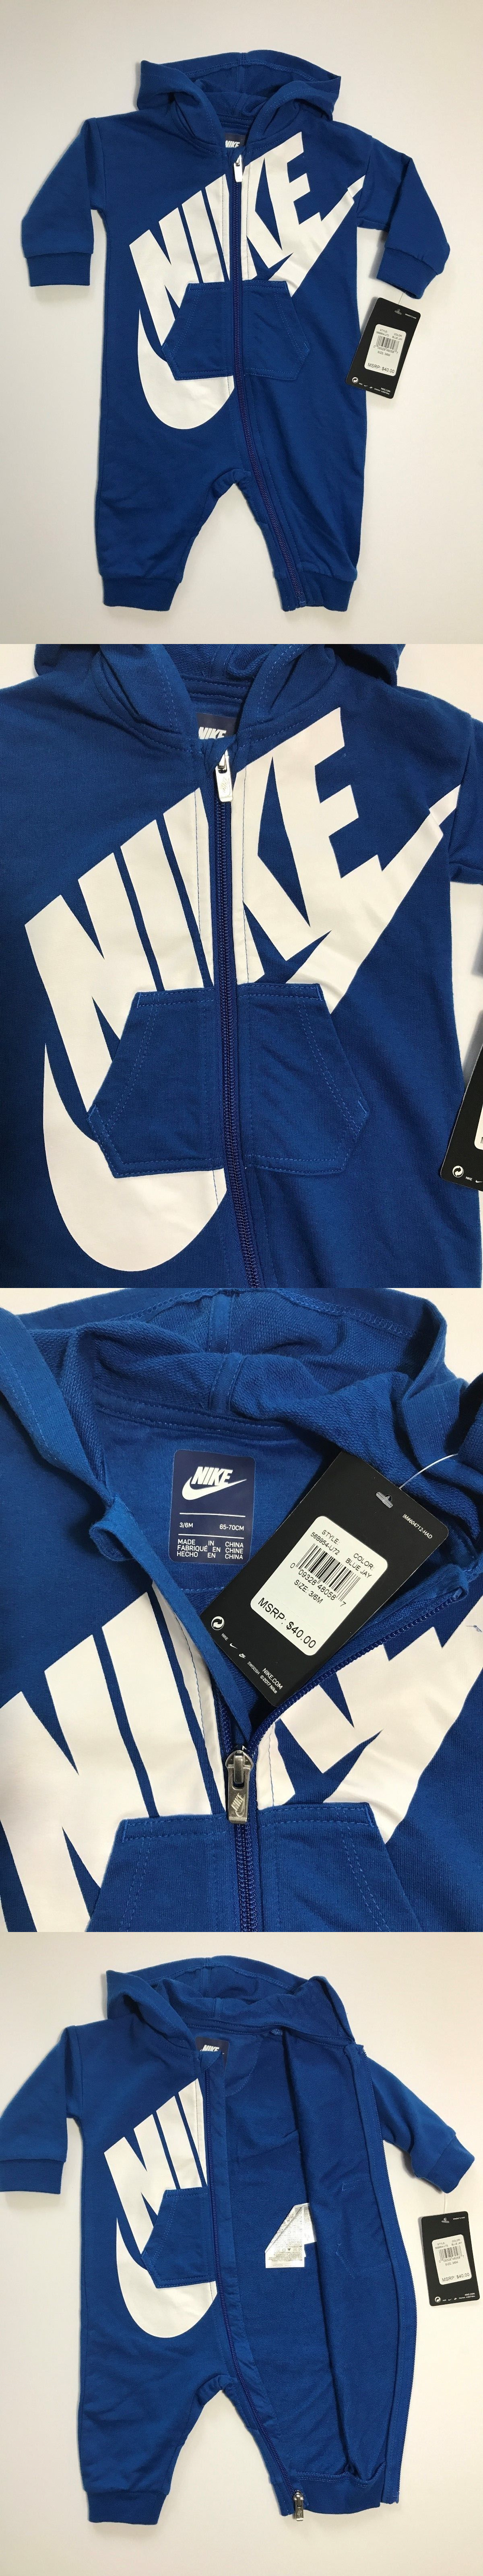 df623fec65c9 Outfits and Sets 147333  Nwt Nike Futura Infant Coverall Hoodie Outfit 3 6M  6 9M 9 12M Blue Jay  40 Cute! -  BUY IT NOW ONLY   32 on eBay!